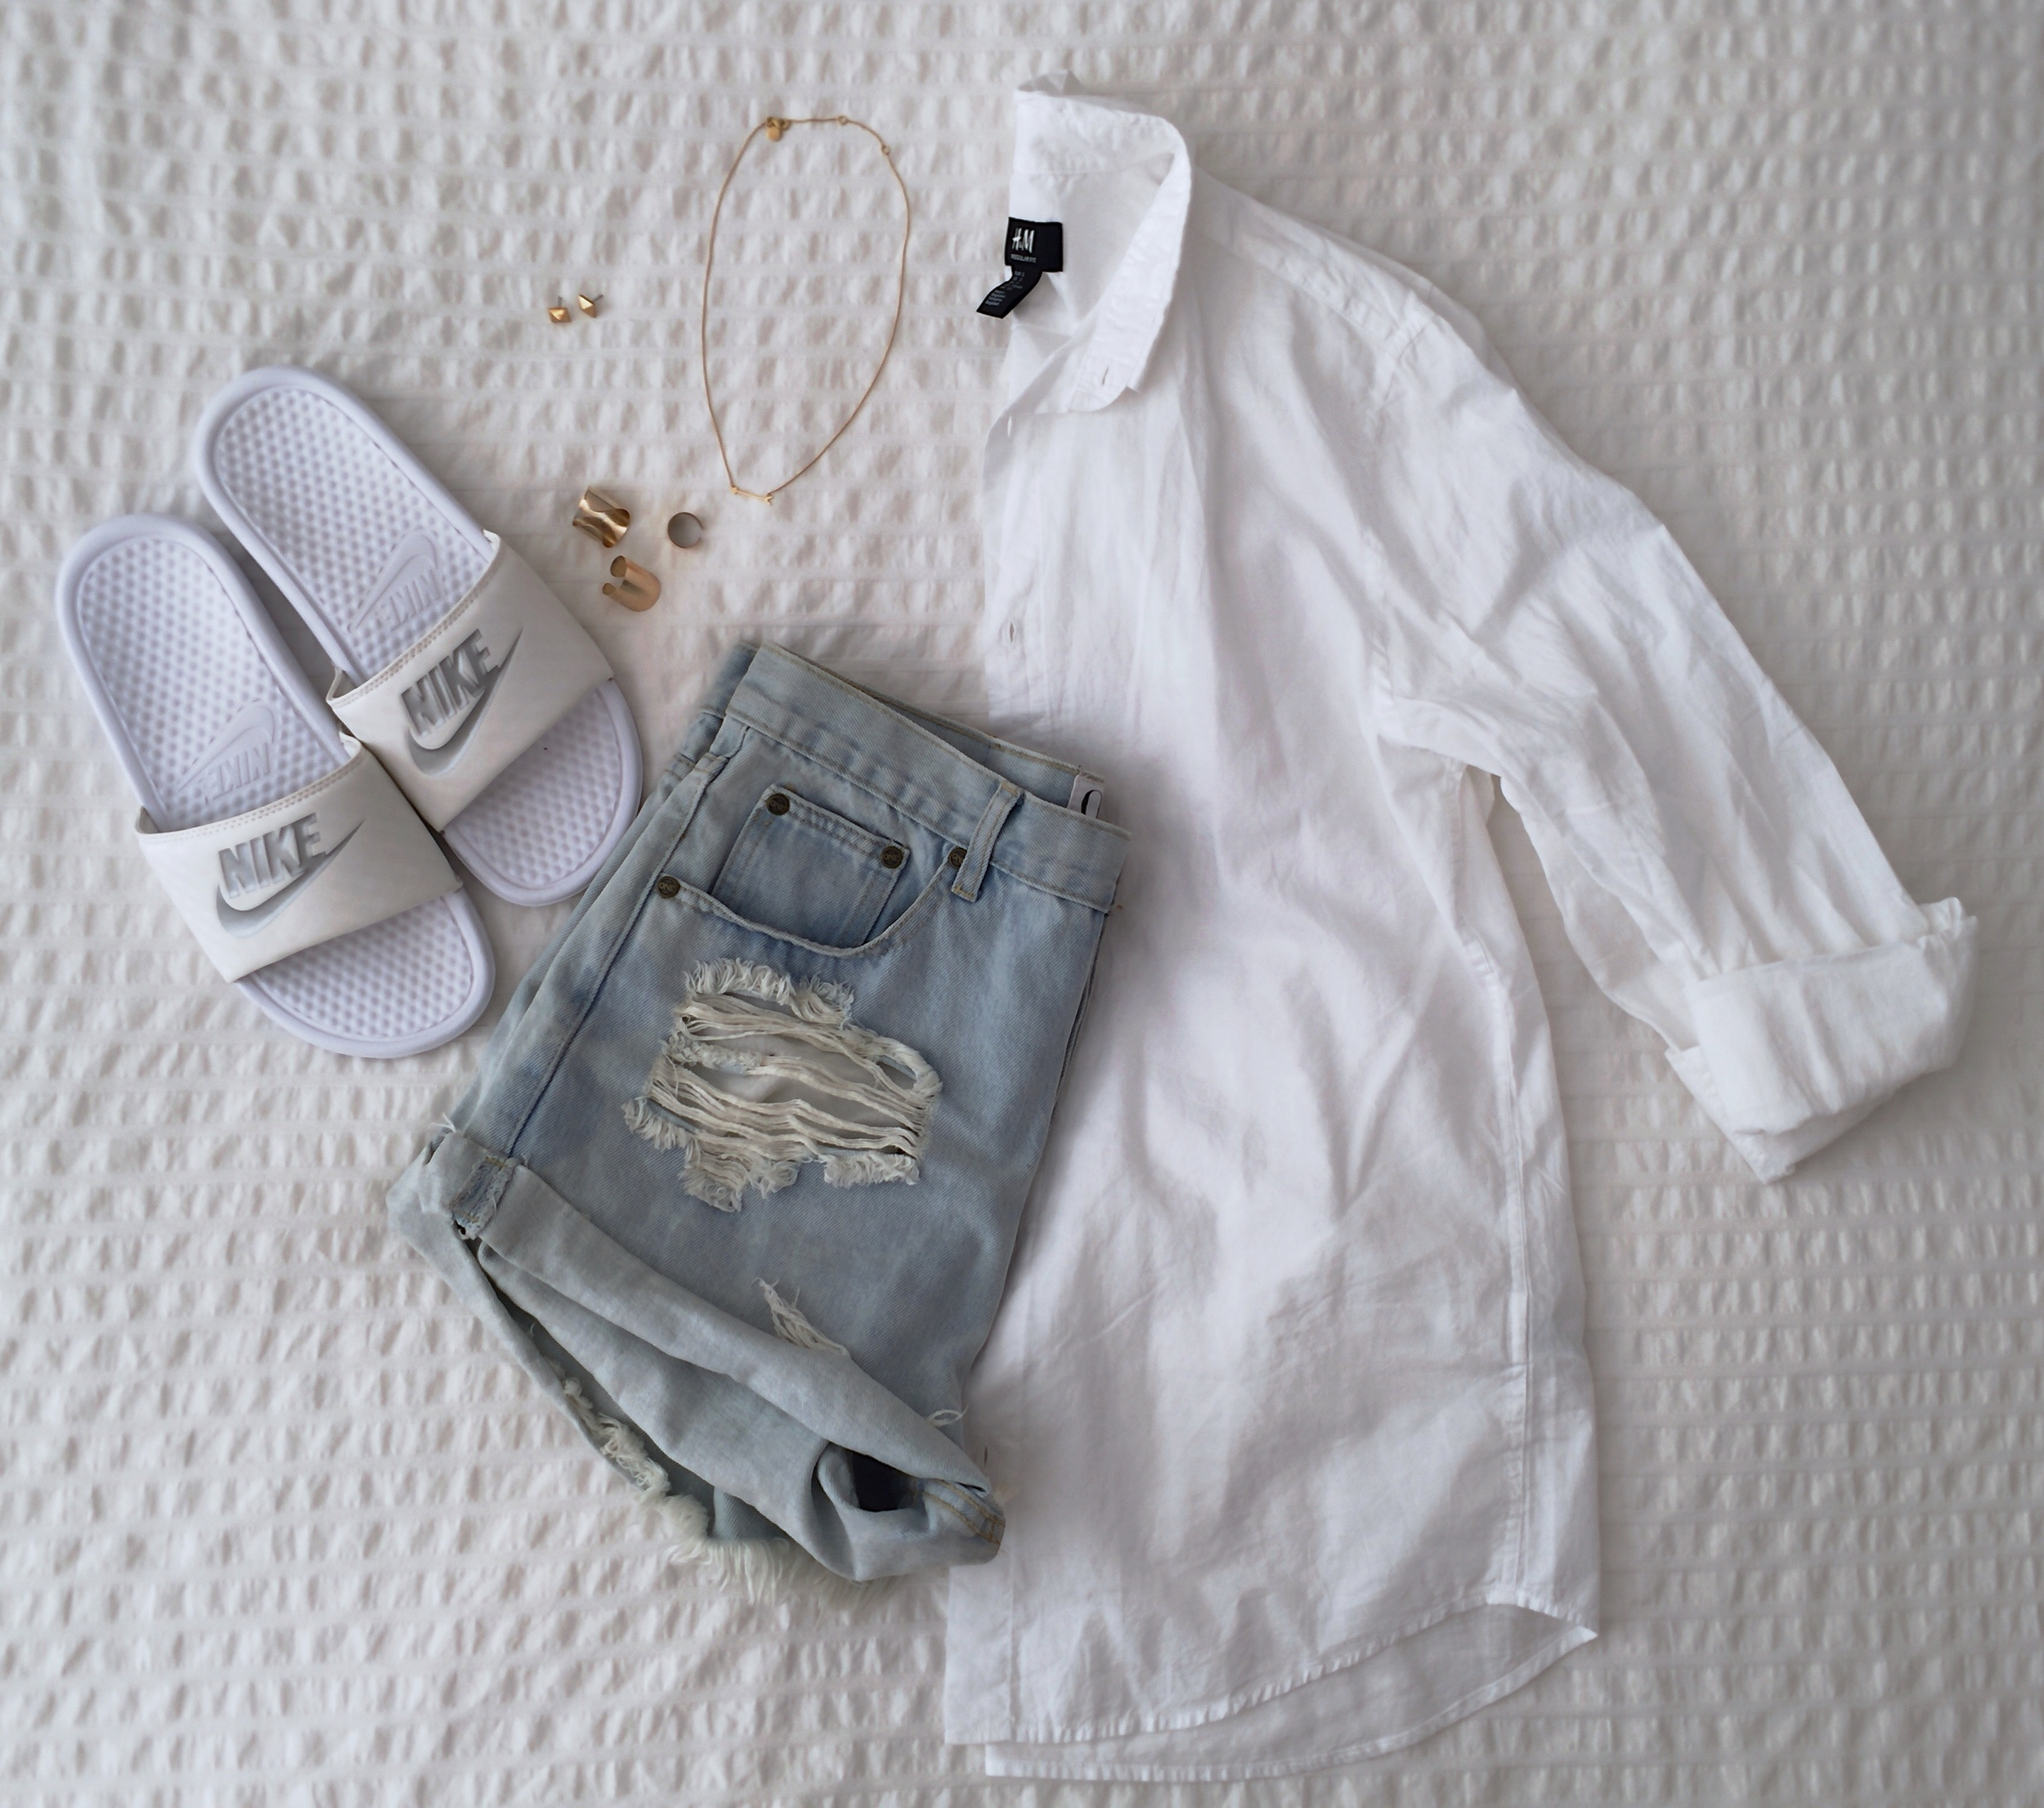 Nike sandals, ONE TEASPOON denim shorts, H&M blouse & gold rings, STELLA & DOT  On The Mark Necklace  +  C  leopatra Studs.